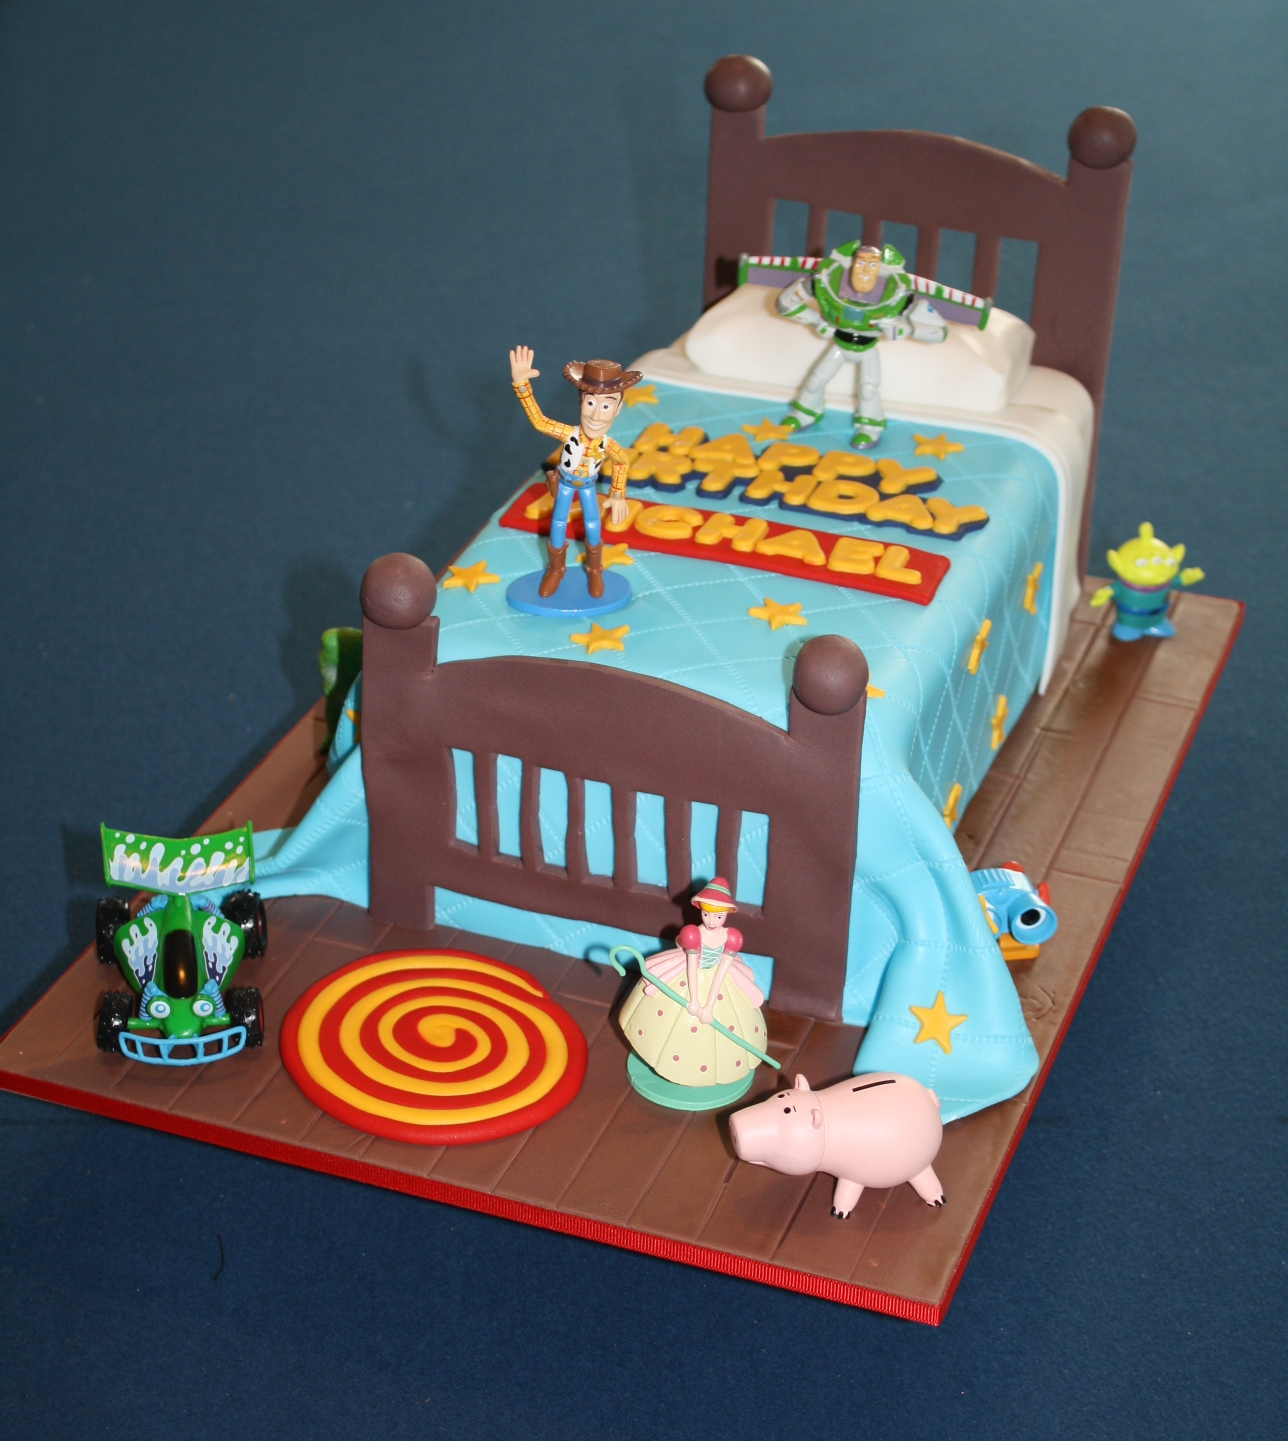 Sandys Cakes Michaels Toy Story Bed Cake For His 4th Birthday